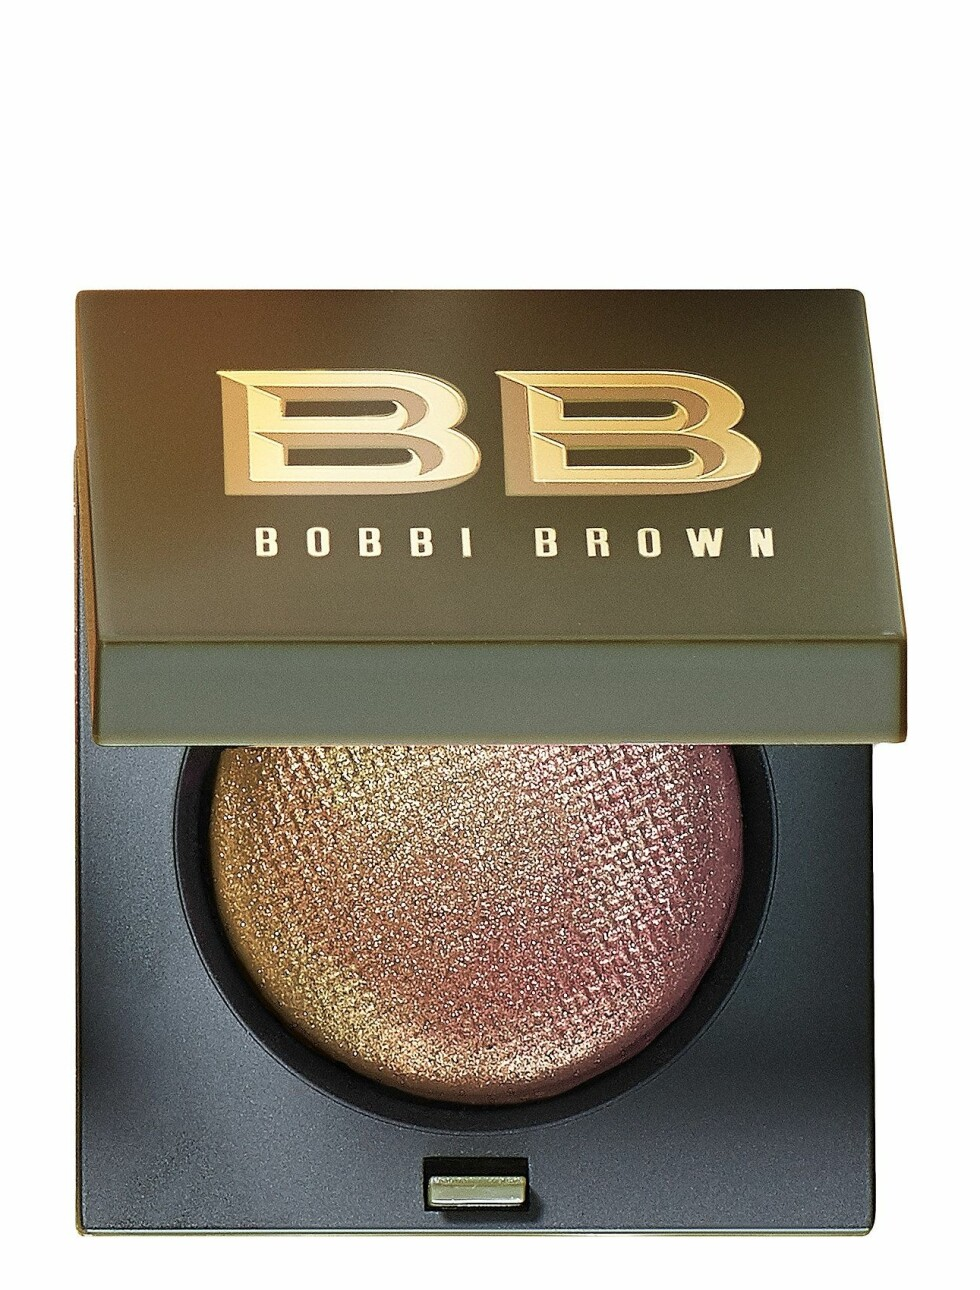 Øyeskygge fra Bobbi Brown |375,-| https://www.boozt.com/no/no/bobbi-brown/luxe-eye-shadow-multichrome-jungle_19134438/19134264?navId=67362&group=listing&position=1500000